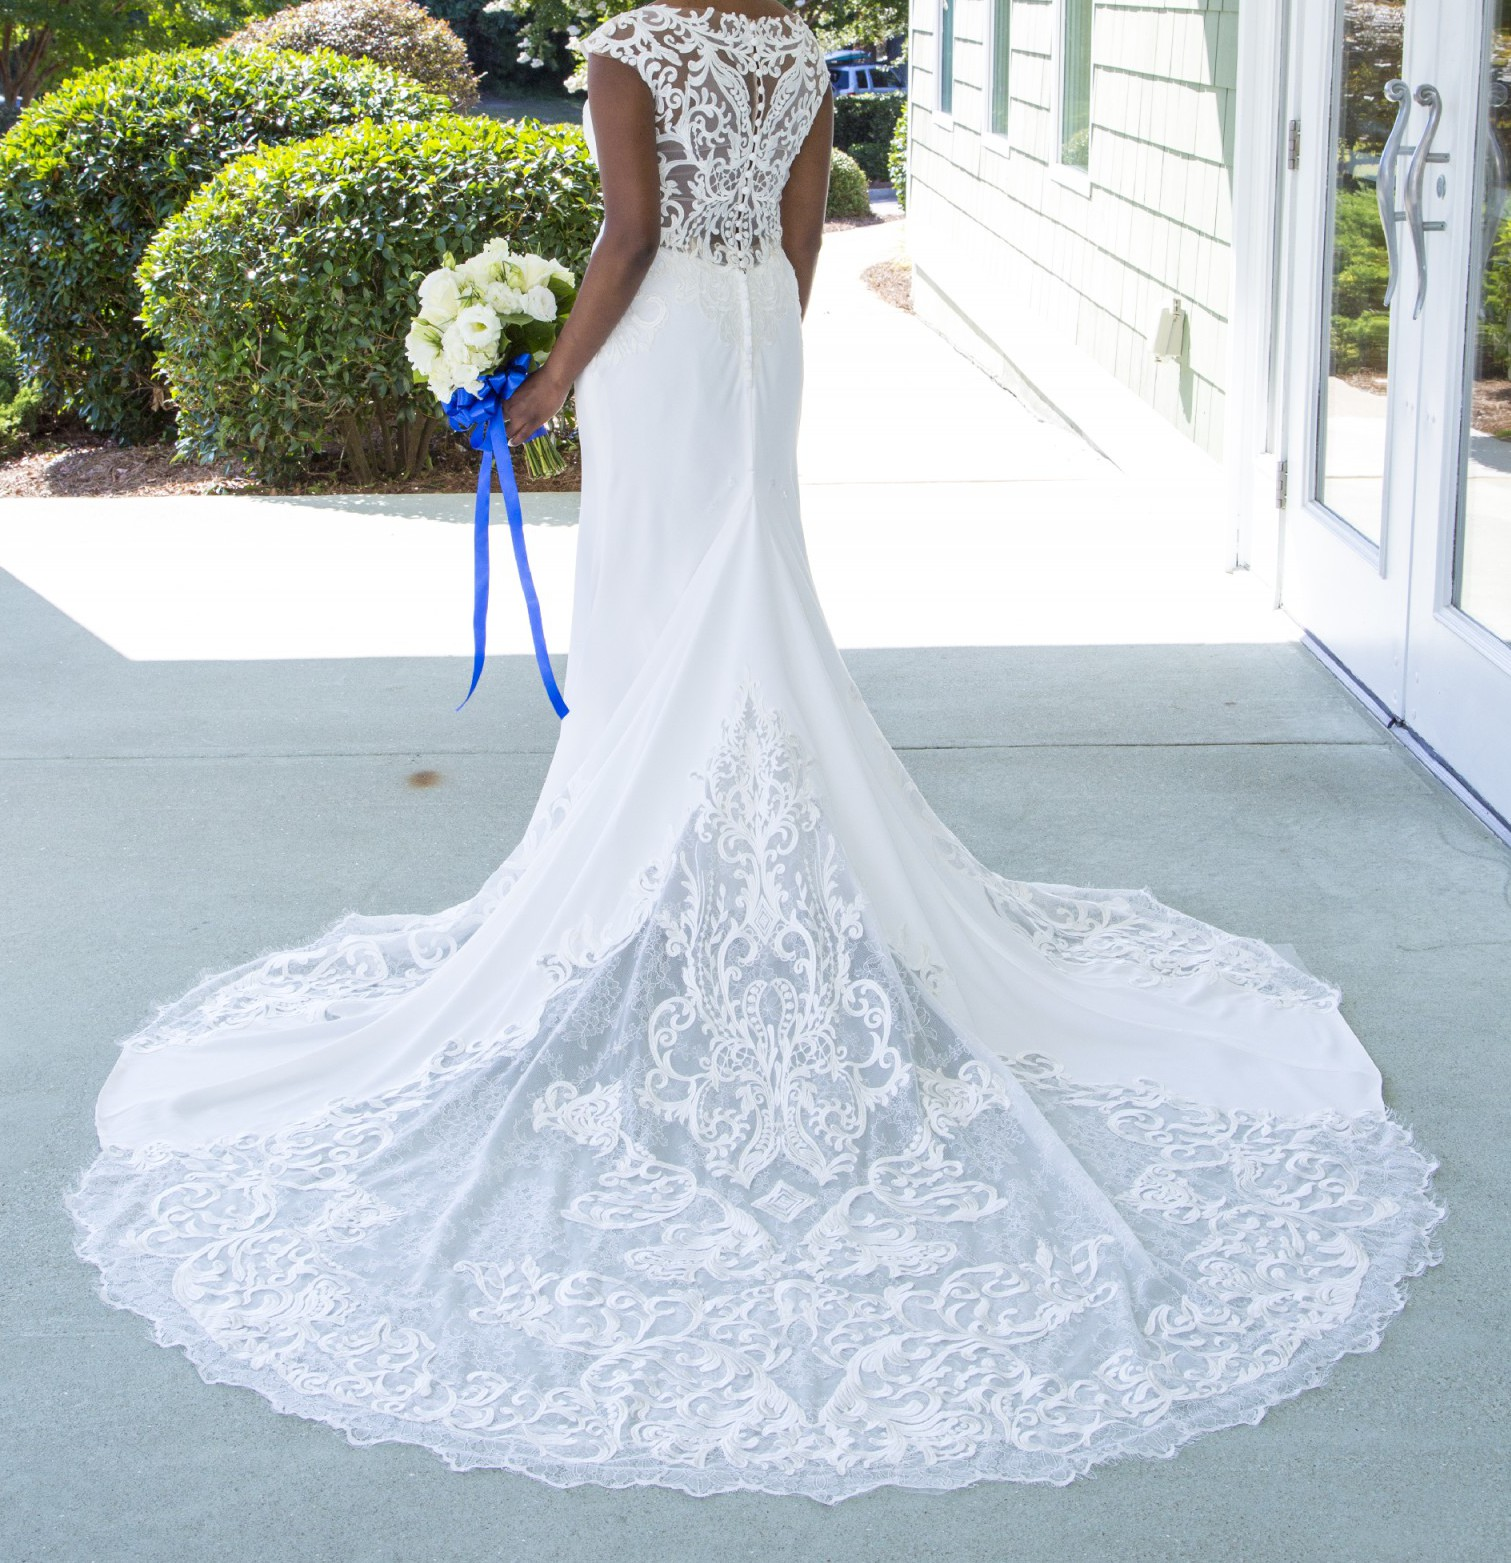 Allure Bridals 9469 Used Wedding Dress On Sale 67% Off